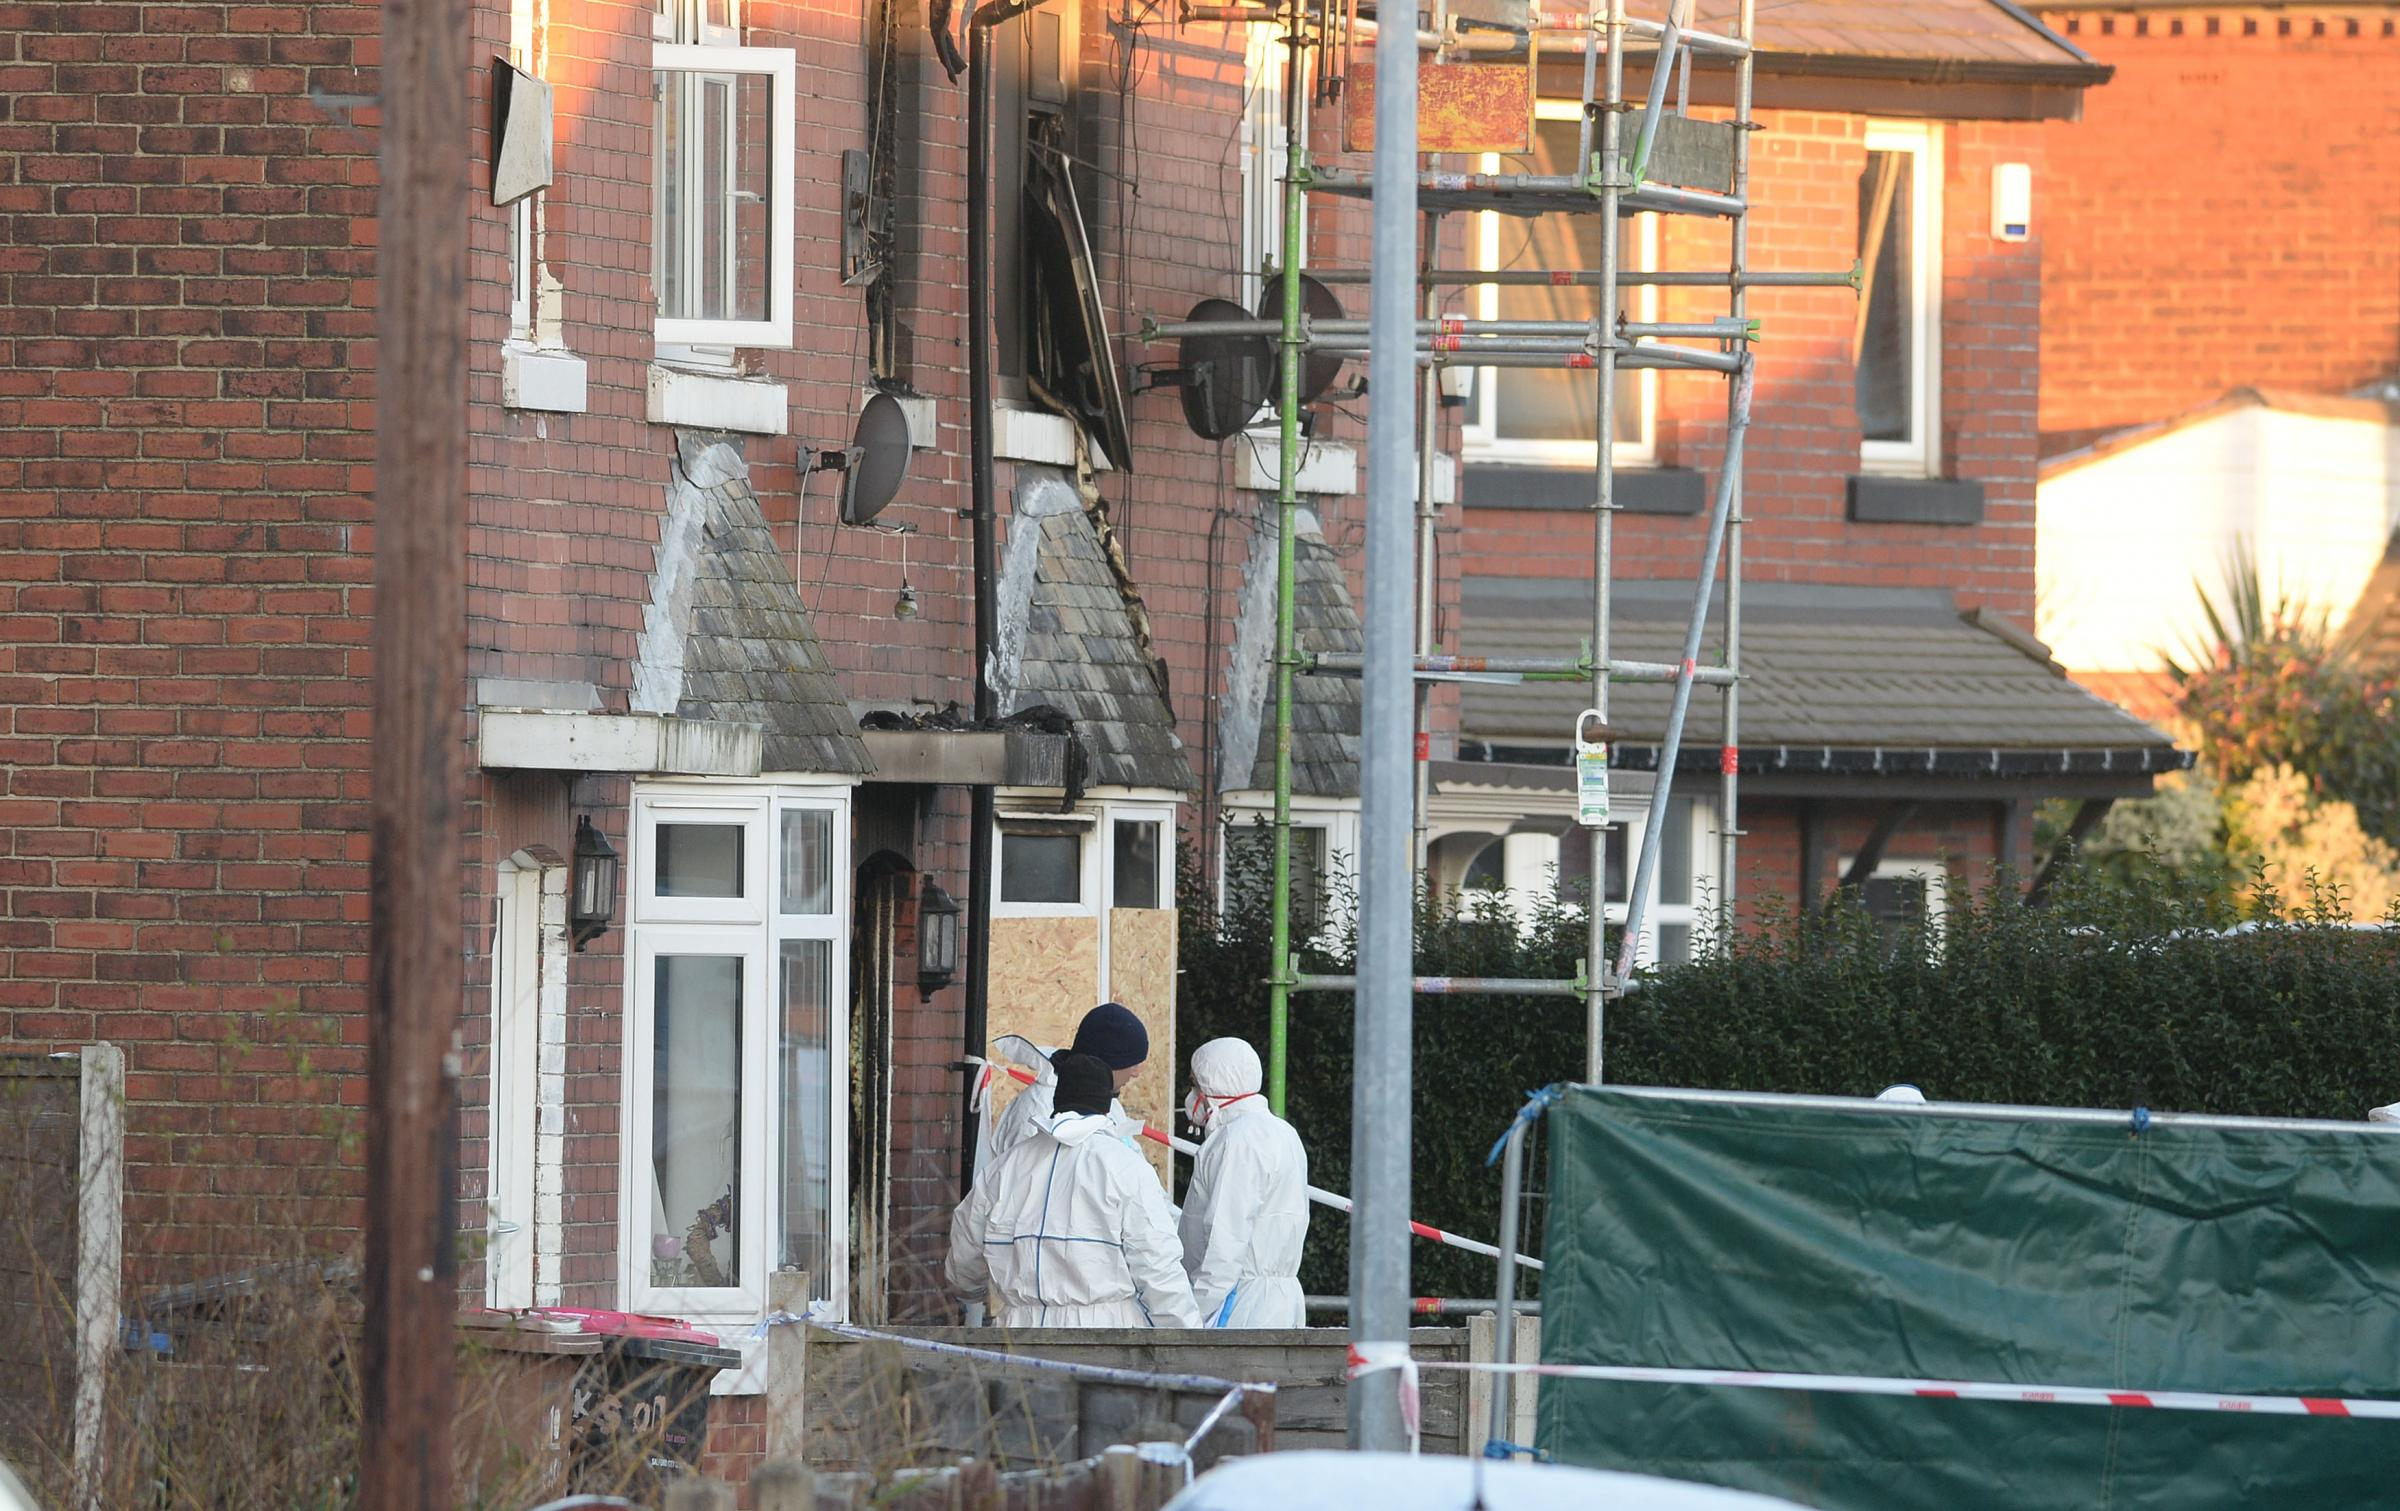 Walkden house fire: Third person appears in court charged with murder of four children